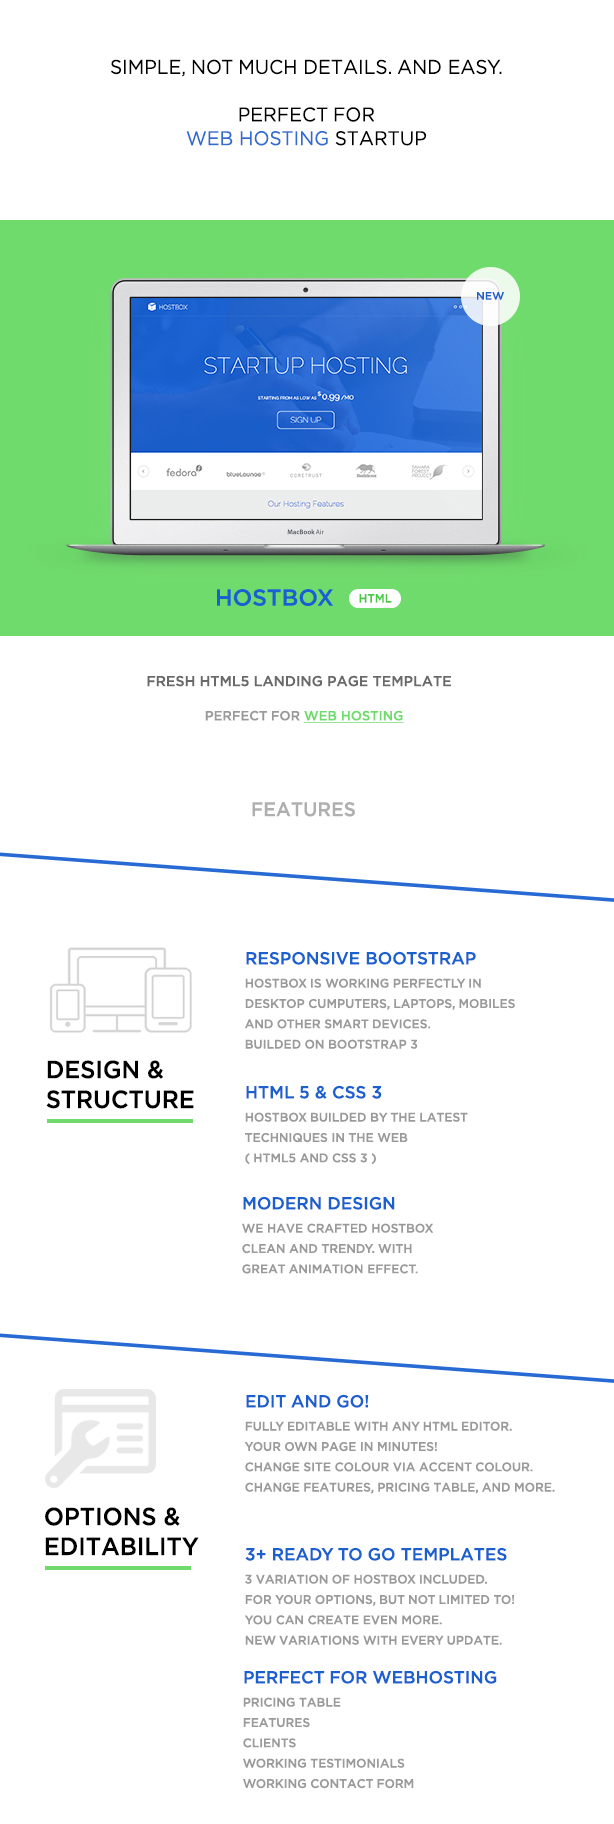 Hostbox WHMCS & HTML5 Landing Page - 4